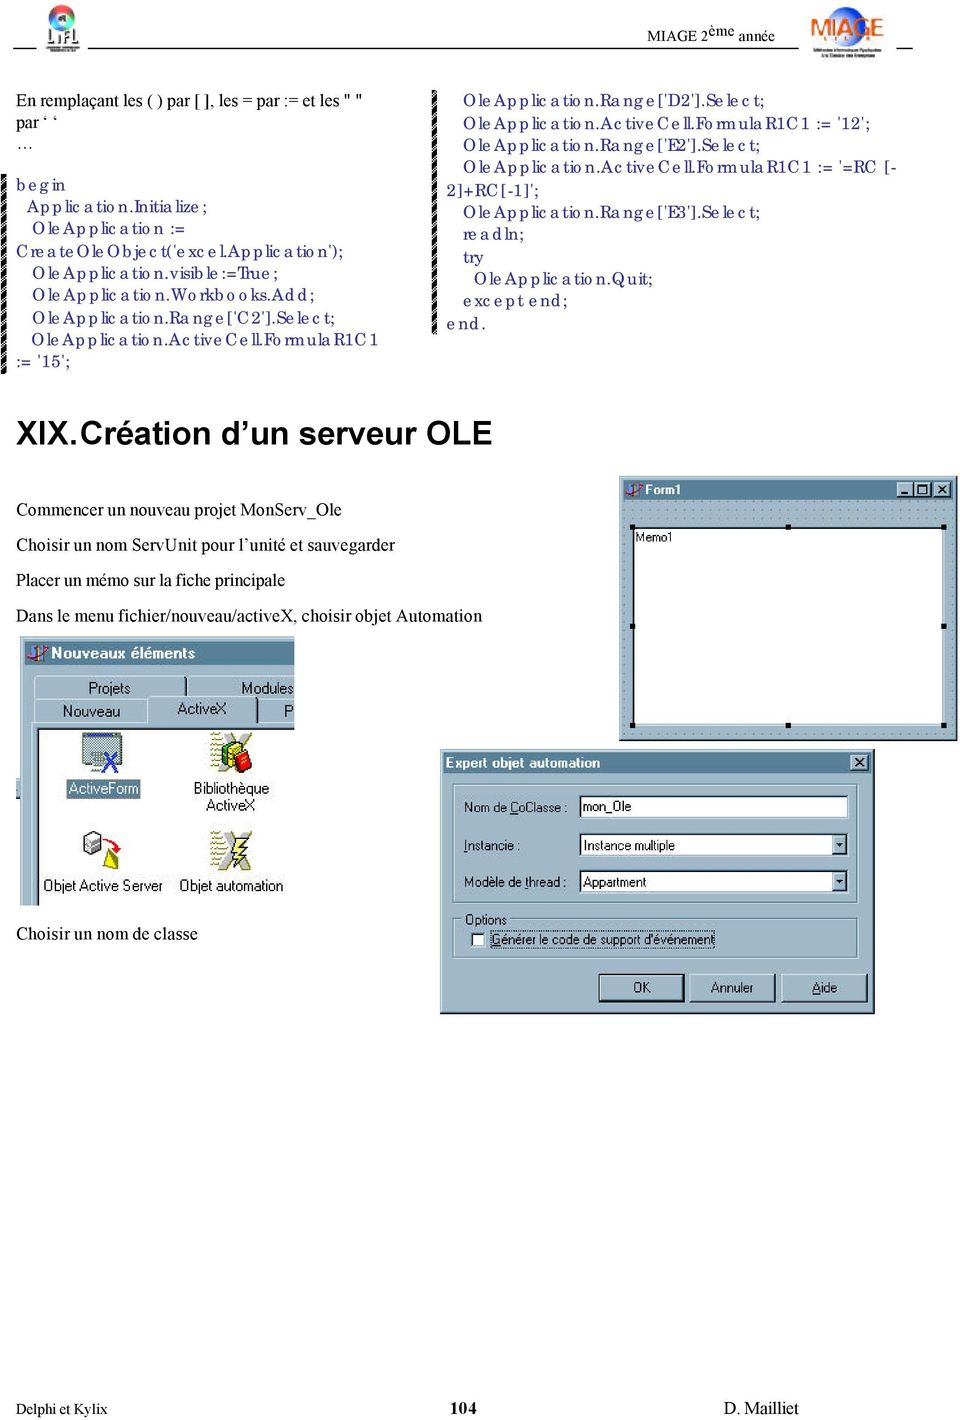 Select; OleApplication.ActiveCell.FormulaR1C1 := '=RC [- 2]+RC[-1]'; OleApplication.Range['E3'].Select; readln; try OleApplication.Quit; except XIX.